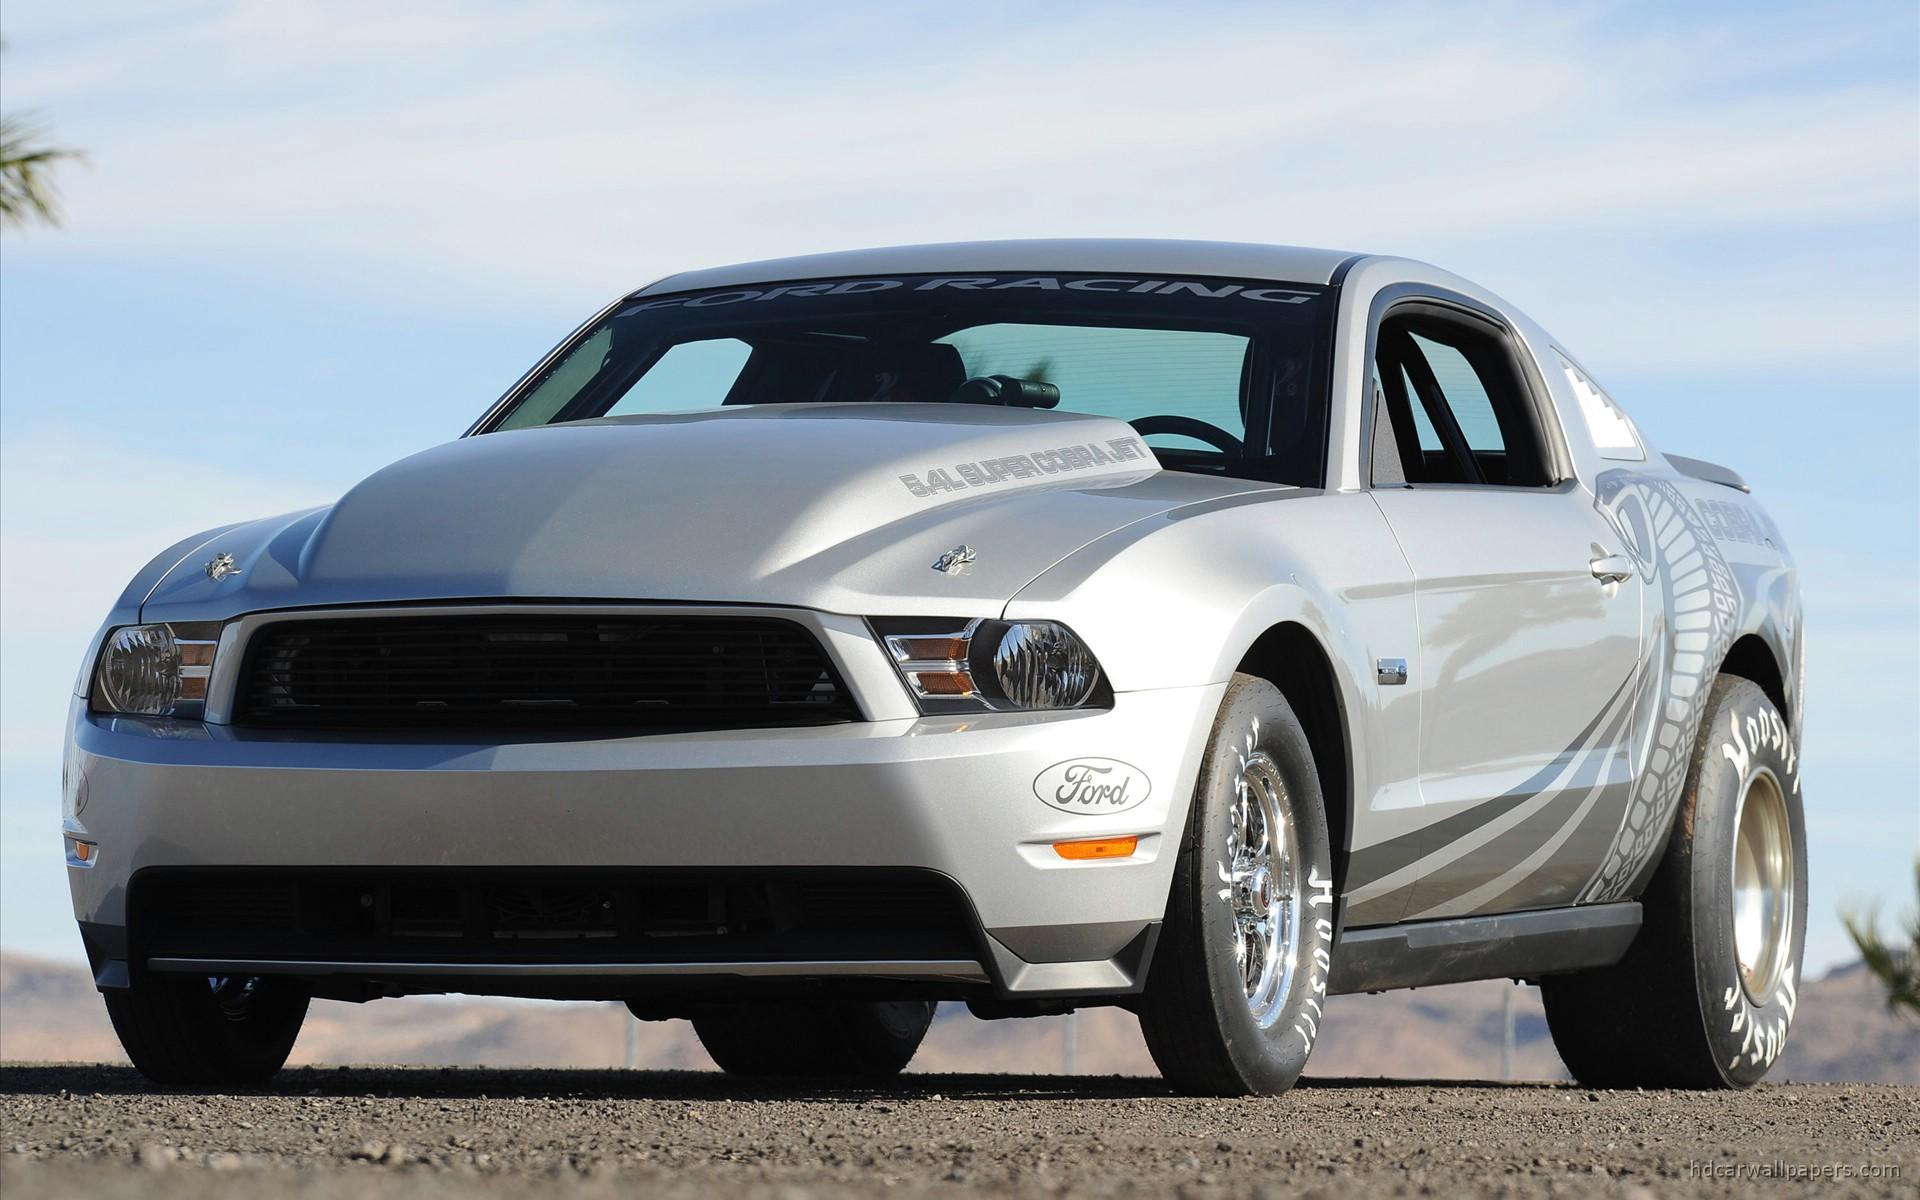 2010 Ford Mustang Cobra Jet Wallpapers HD Wallpapers 1920x1200